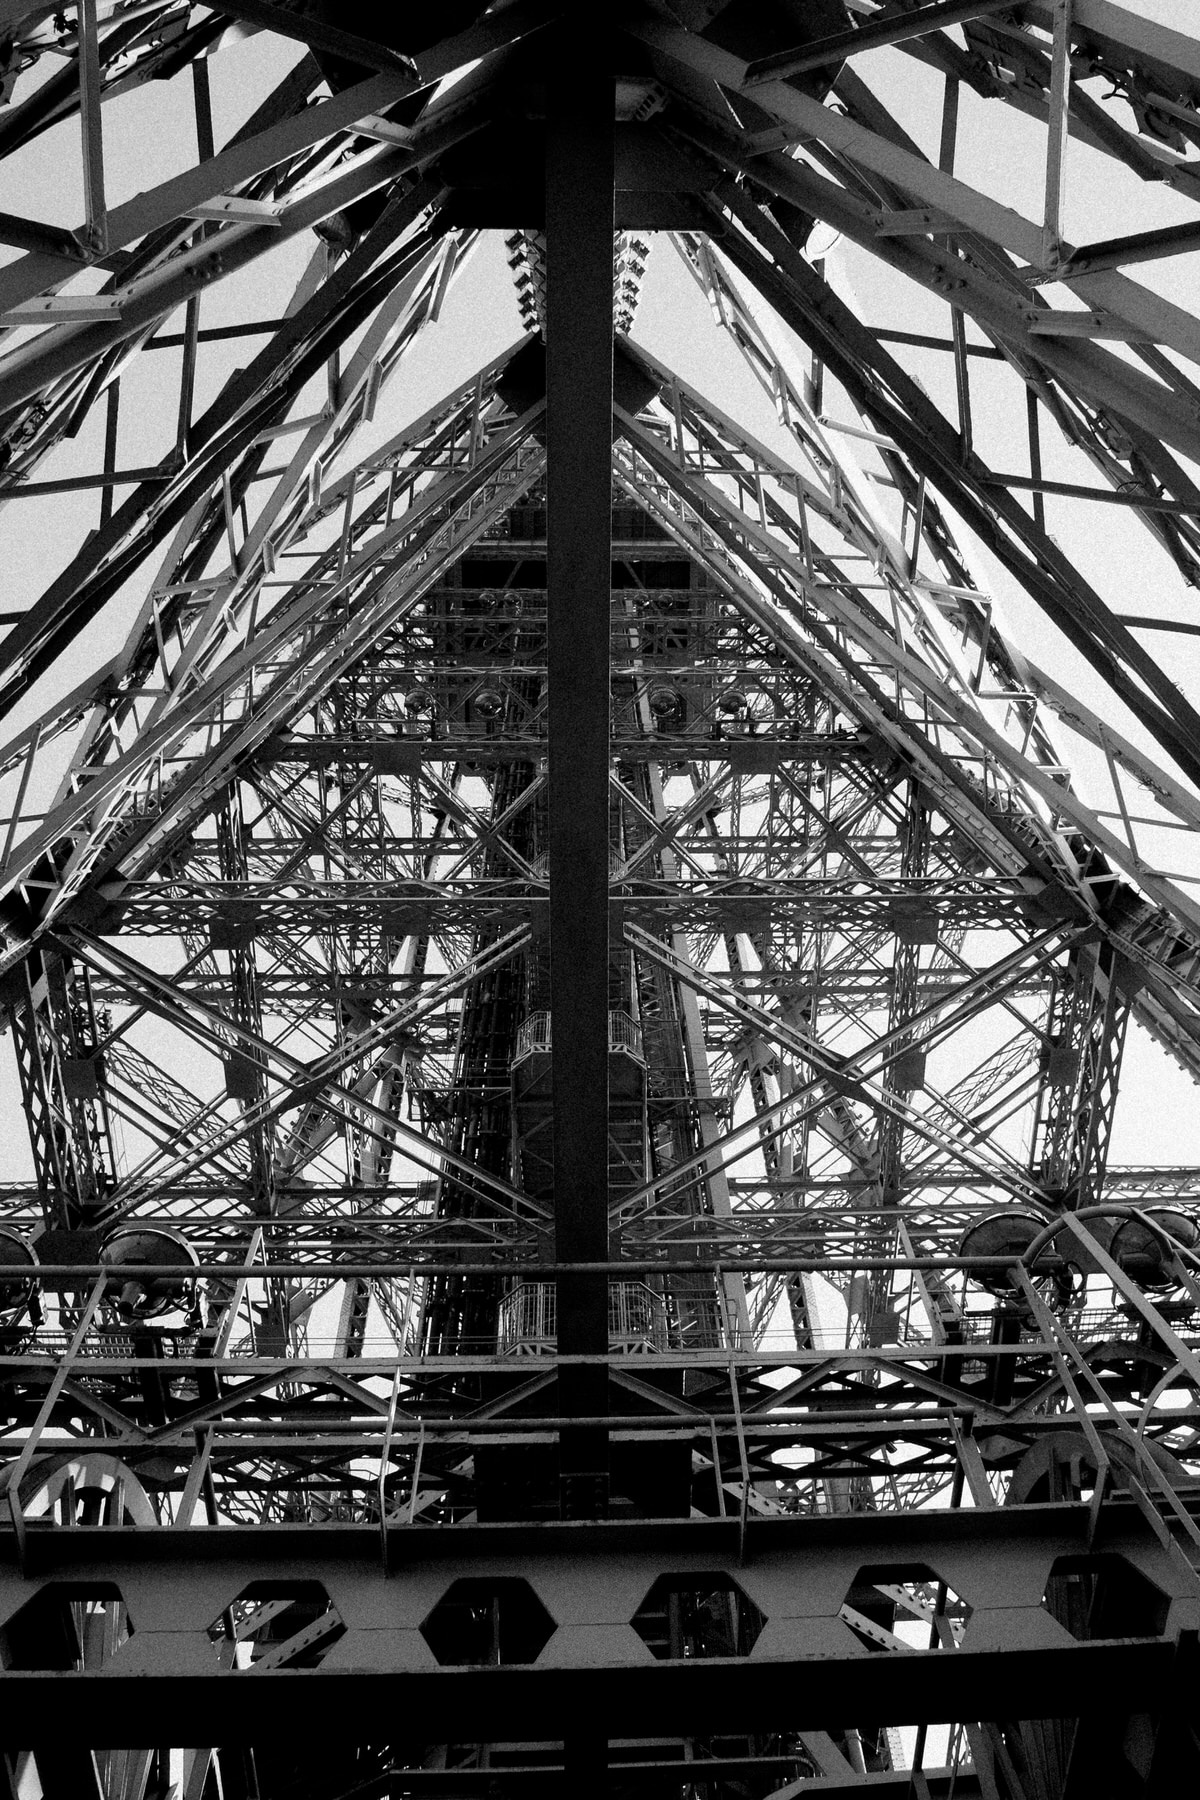 Eiffel-Tower-Paris-France-black-and-white-fine-art-photography-by-Studio-L-photographer-Laura-Schneider-_4660